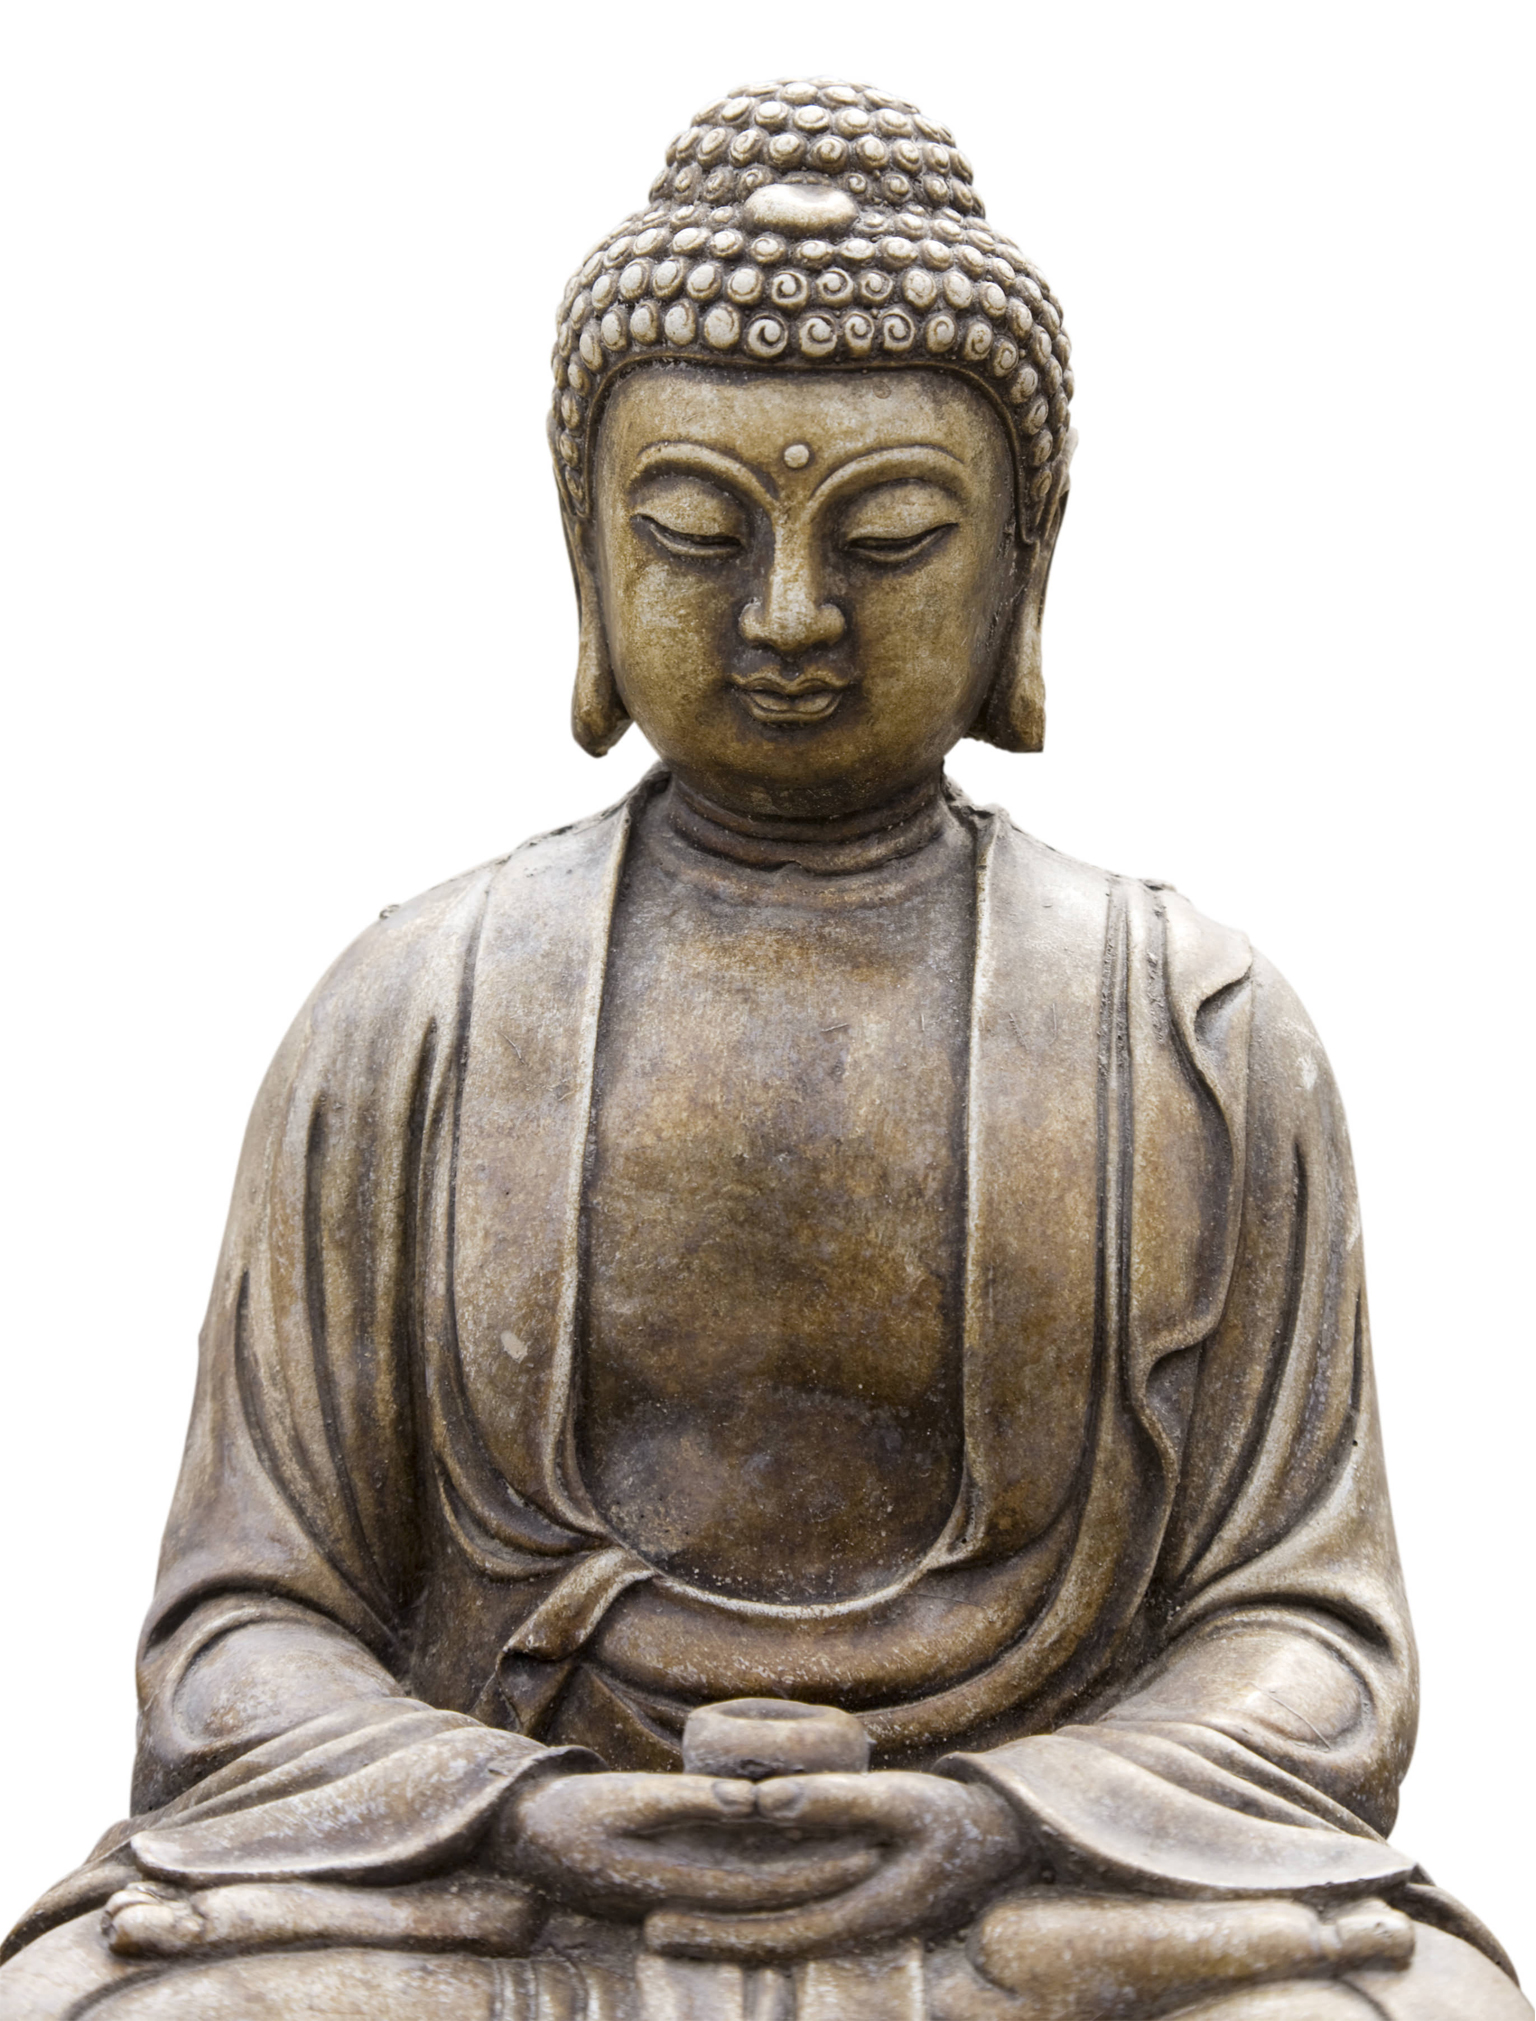 when buddhism was the dominant tradition in india essay Differences between the laity and monastic worshippers within buddhist tradition buddhism india buddha religion essays]:: 4 the dominant religion is.